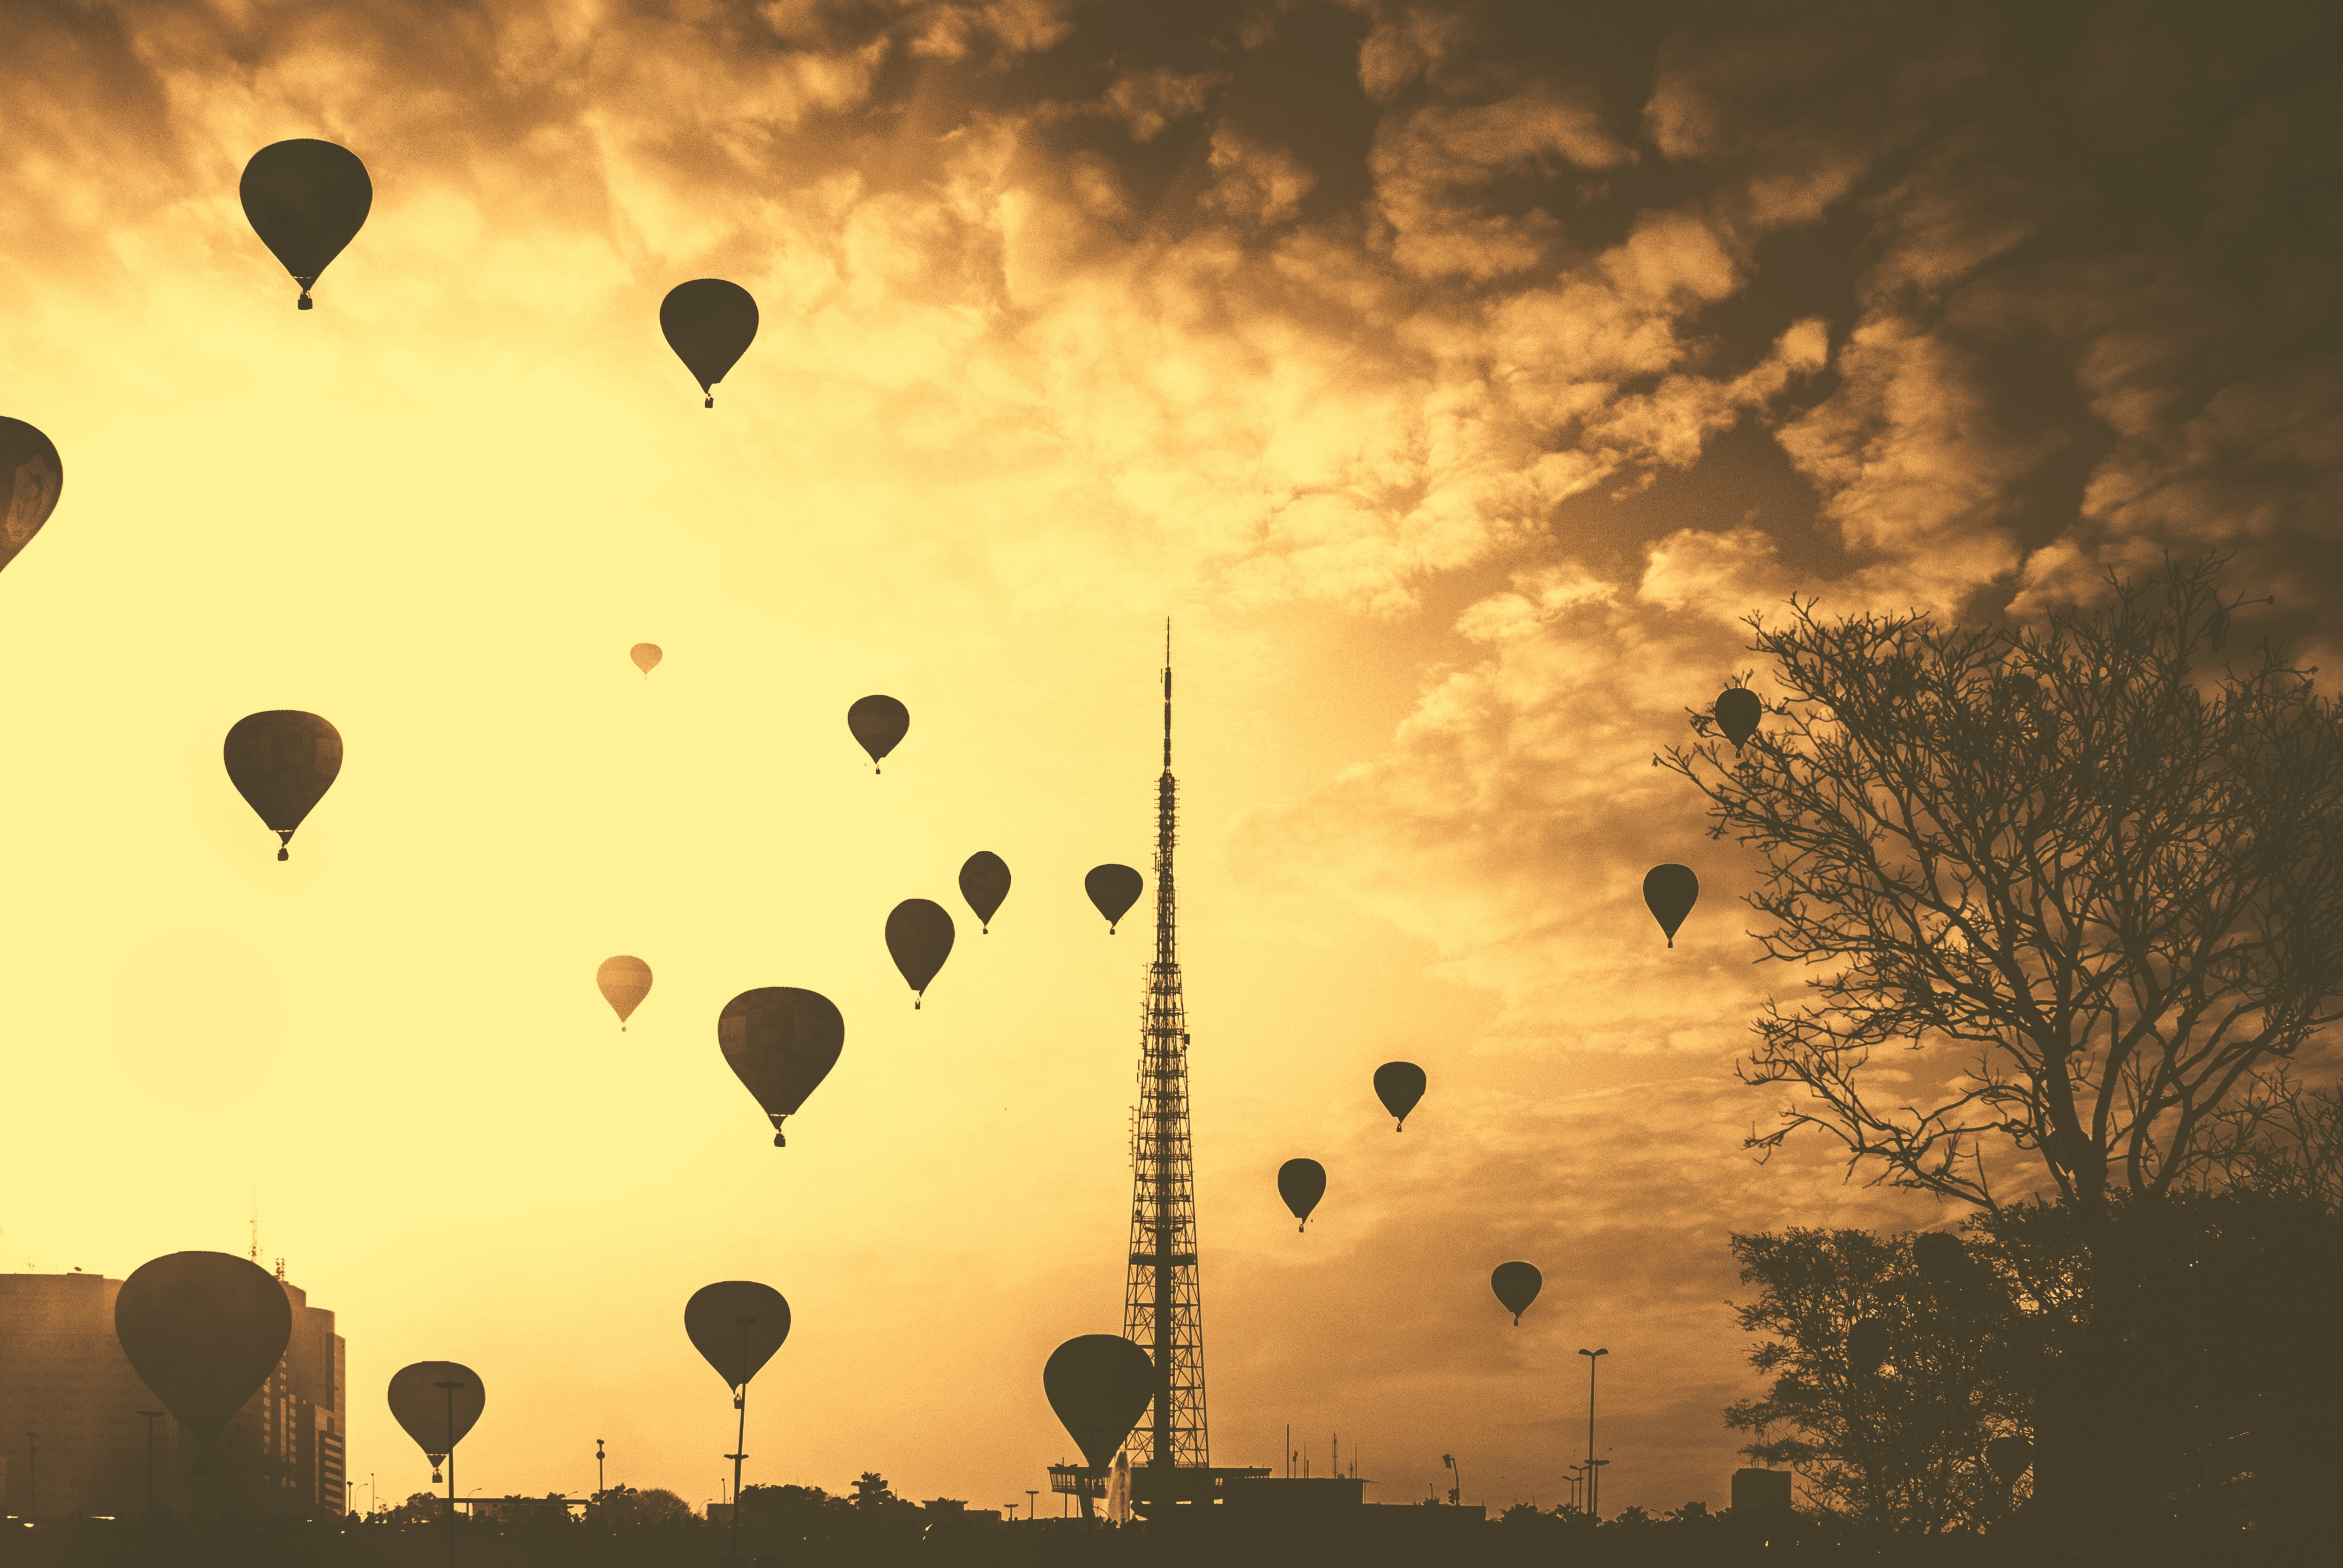 Floating at sunset, balloon, balloons, flight, floating, floating, flying